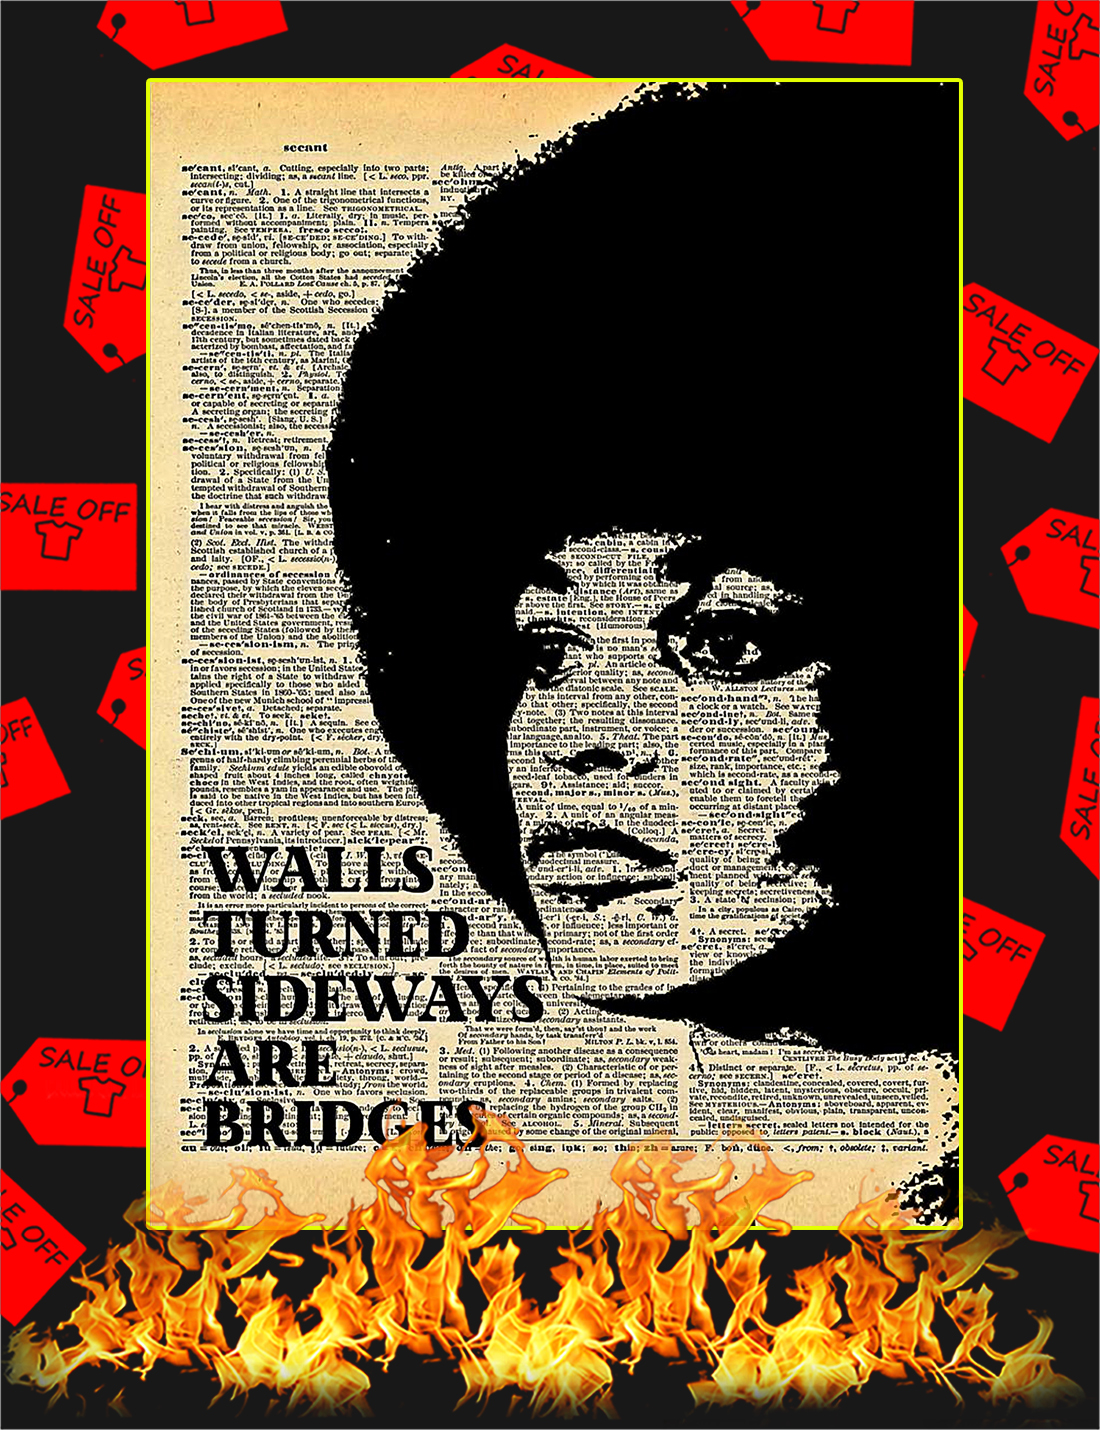 Angela Davis Walls turned sideways are bridges poster - A4